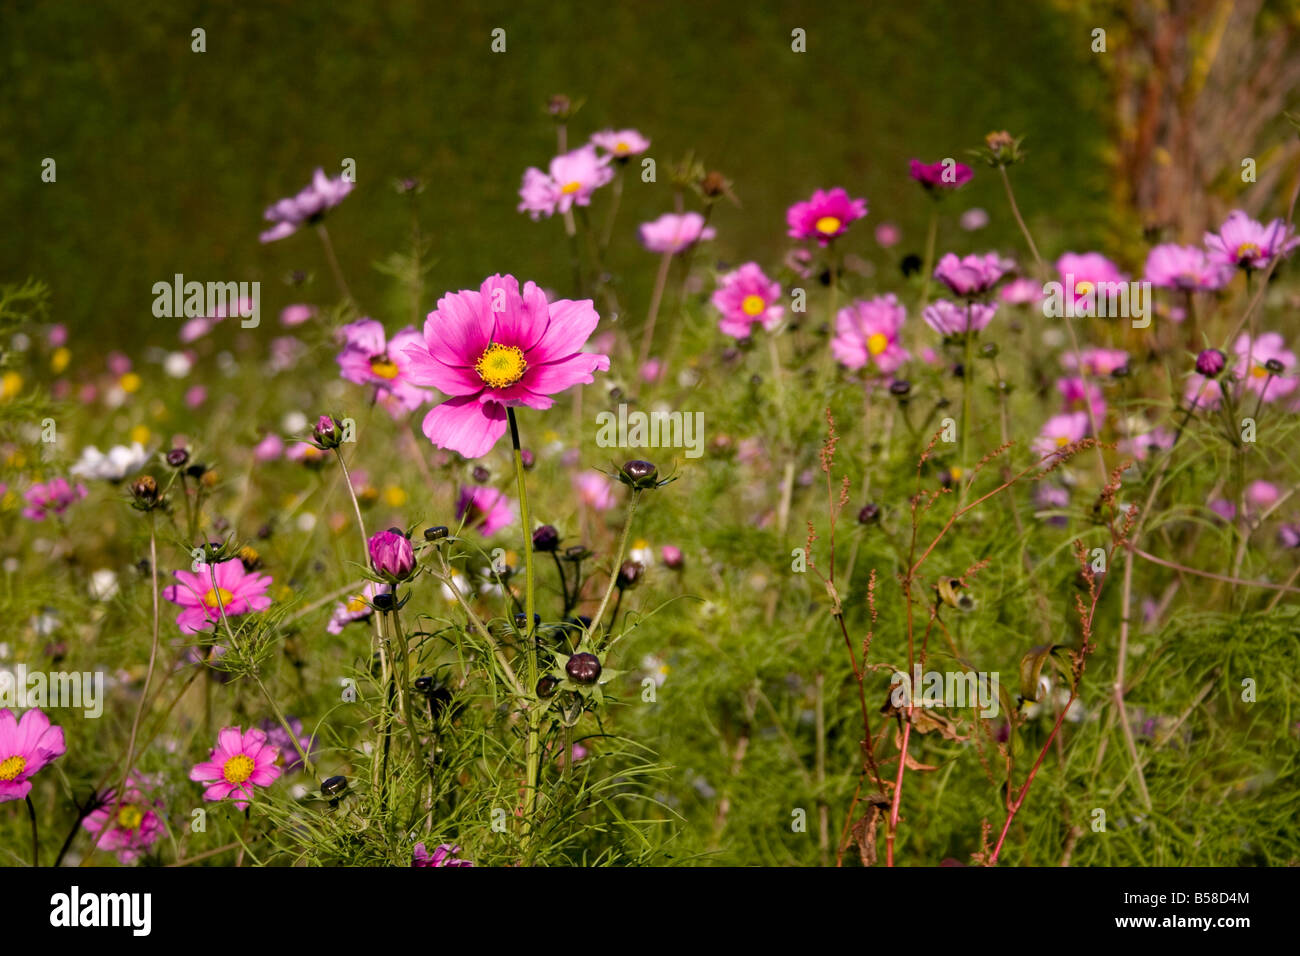 Tall Pink Flower Stock Photos Tall Pink Flower Stock Images Alamy